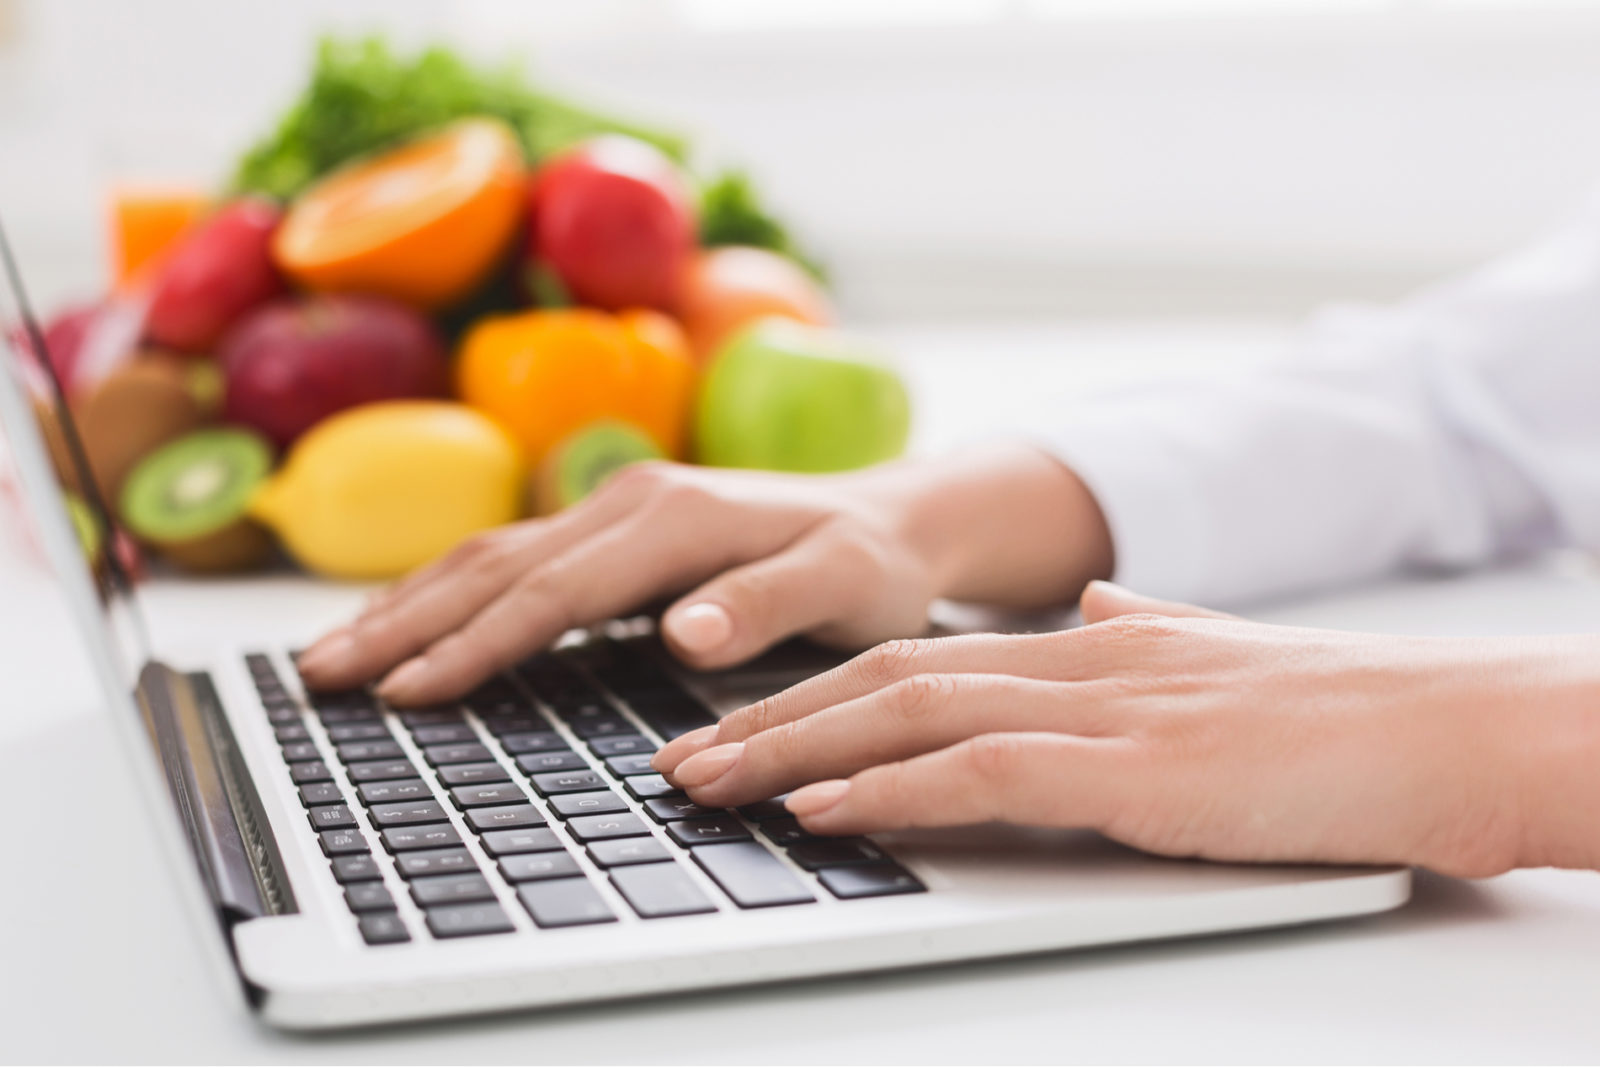 male working on laptop with healthy food behind him